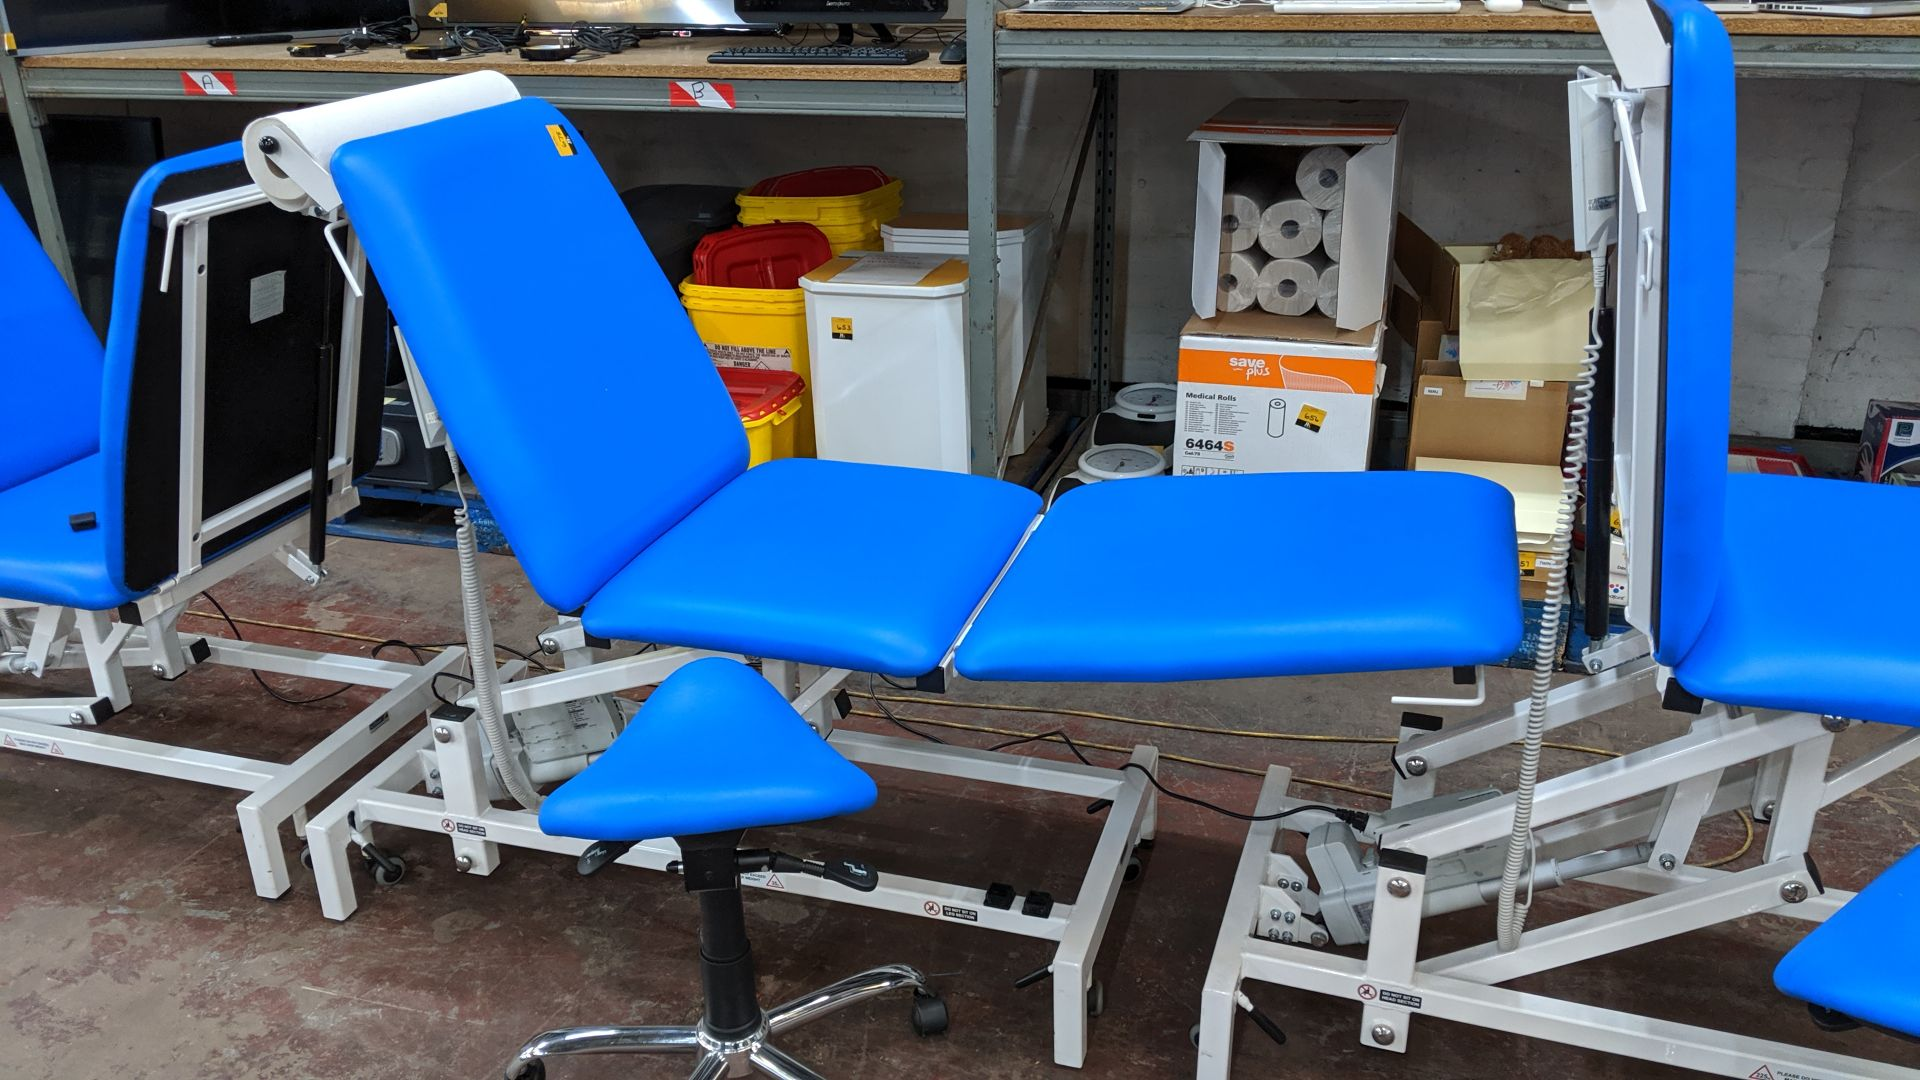 Lot 678 - Sunflower Medical Equipment mobile electrically operated padded examination table with wired linak